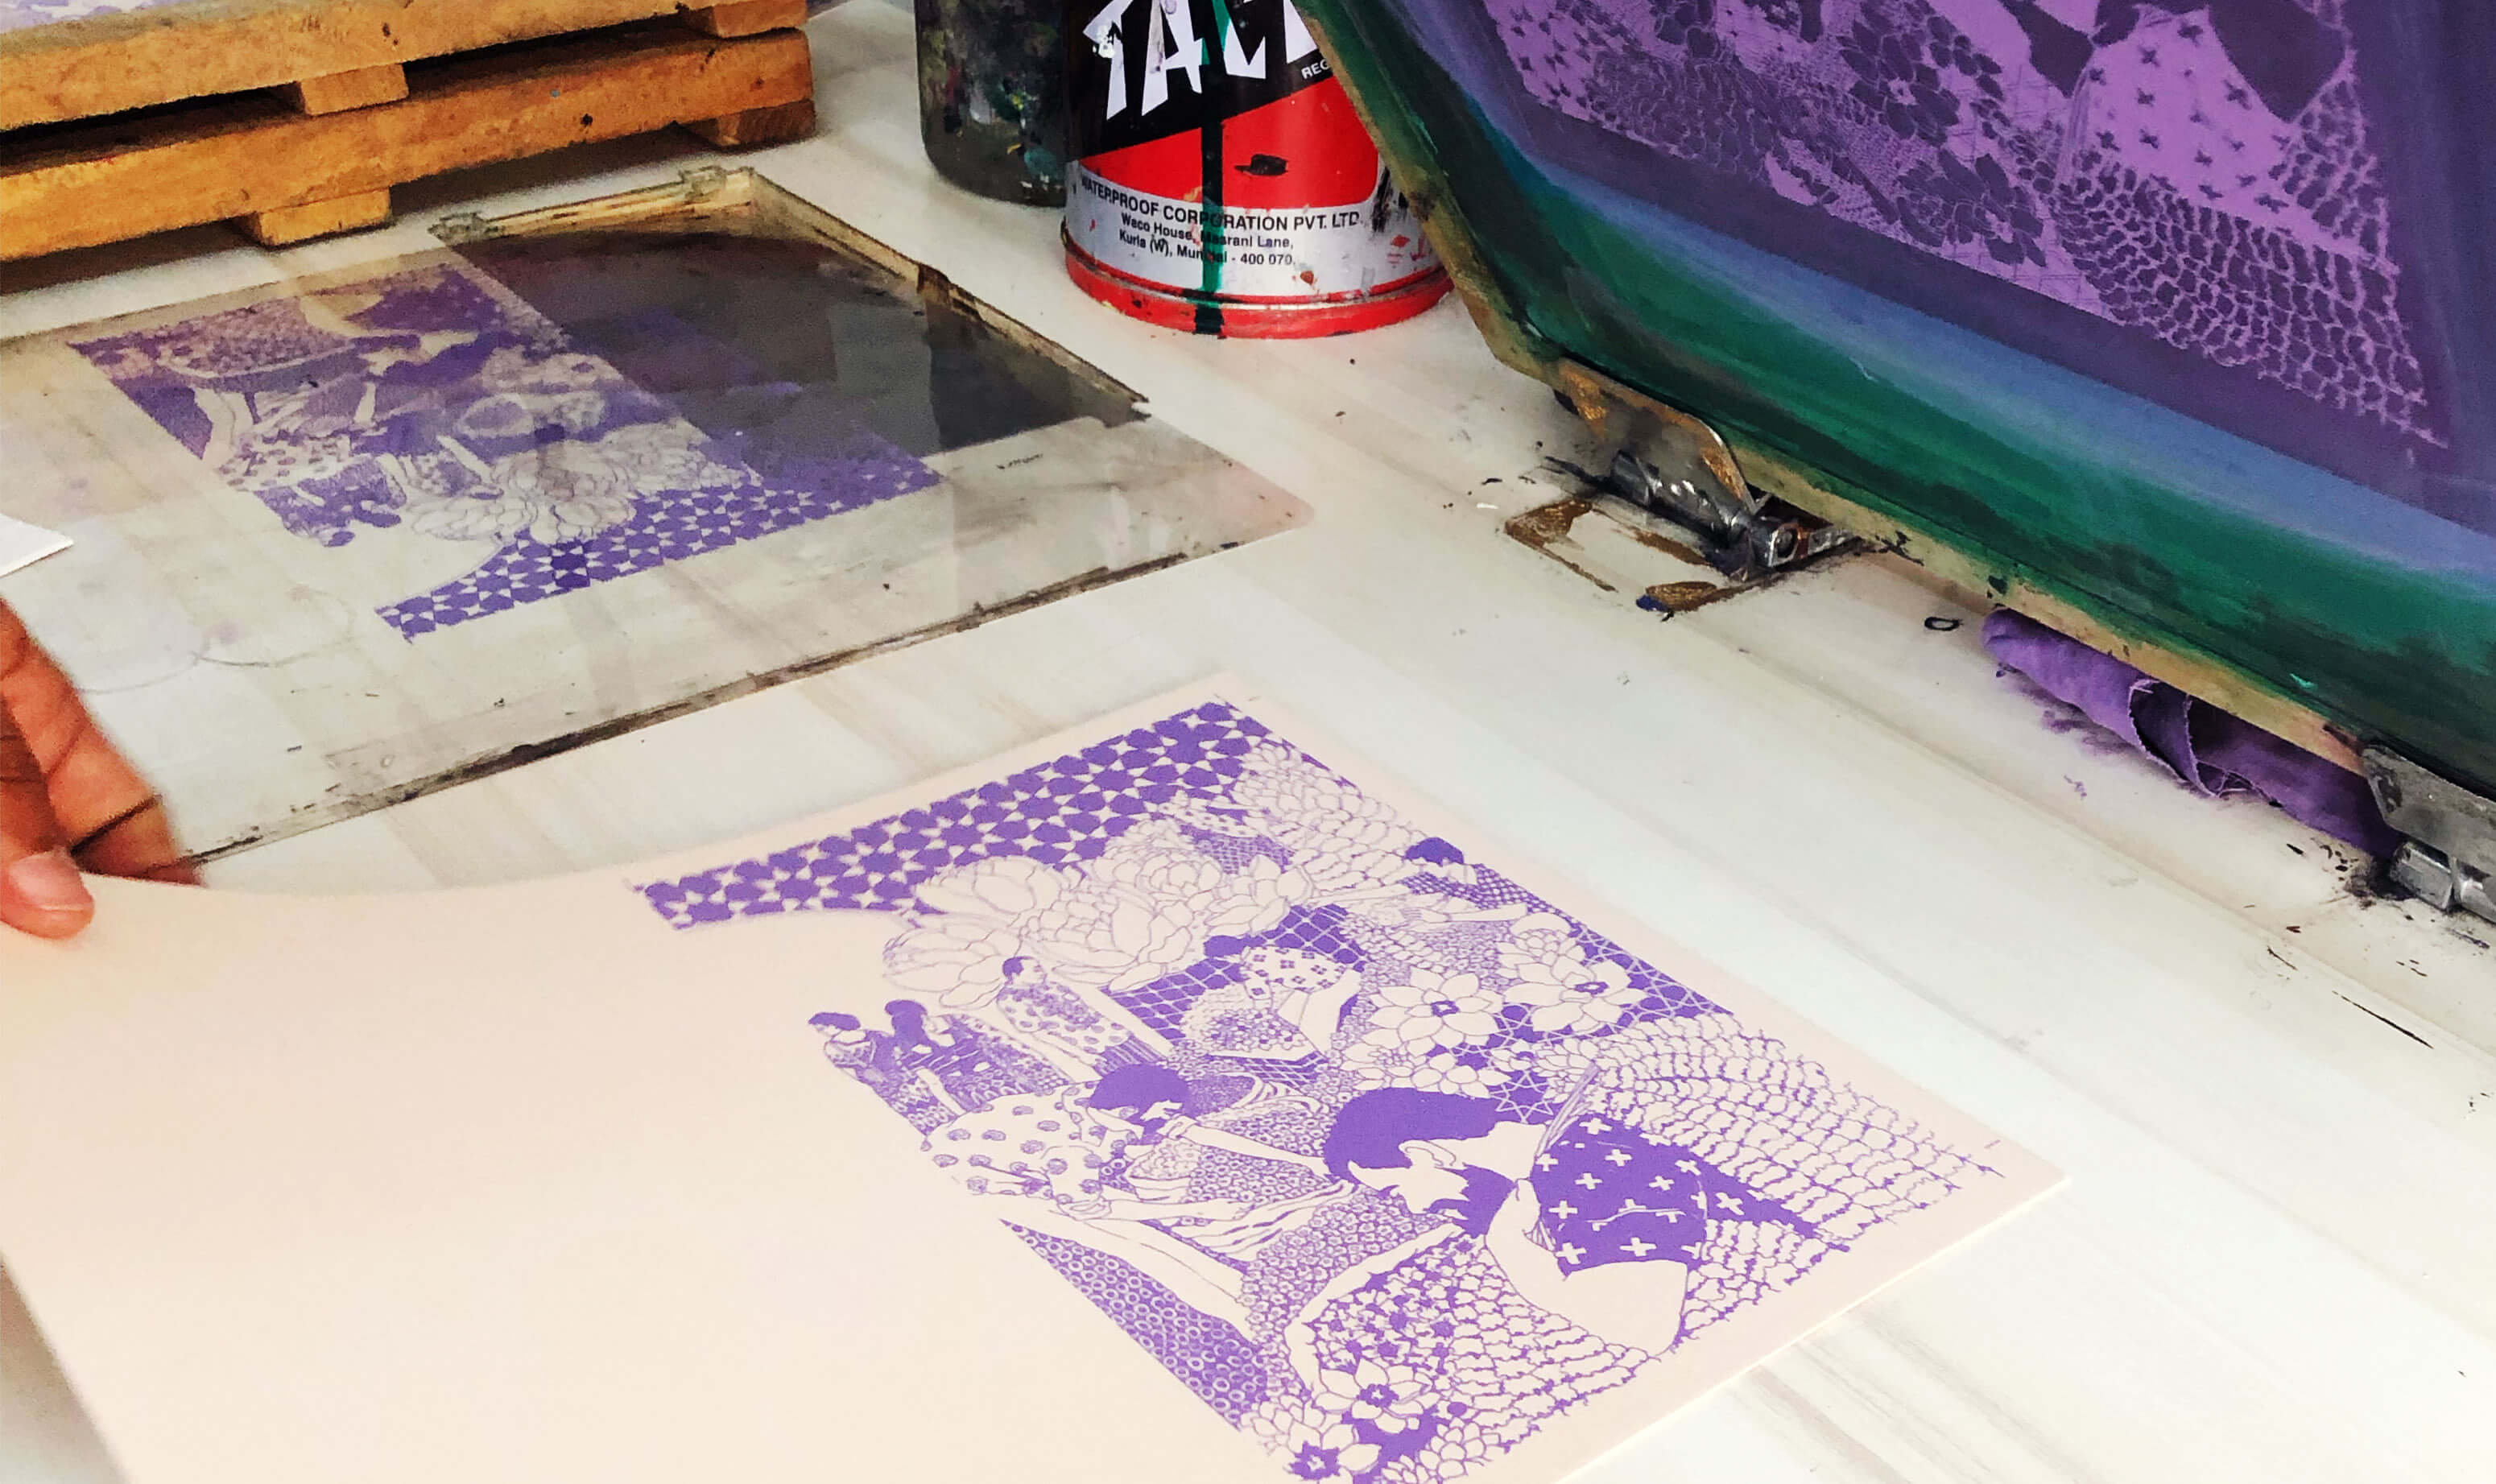 Paper with purple print lying on a white table in a screen print studio with tools lying around